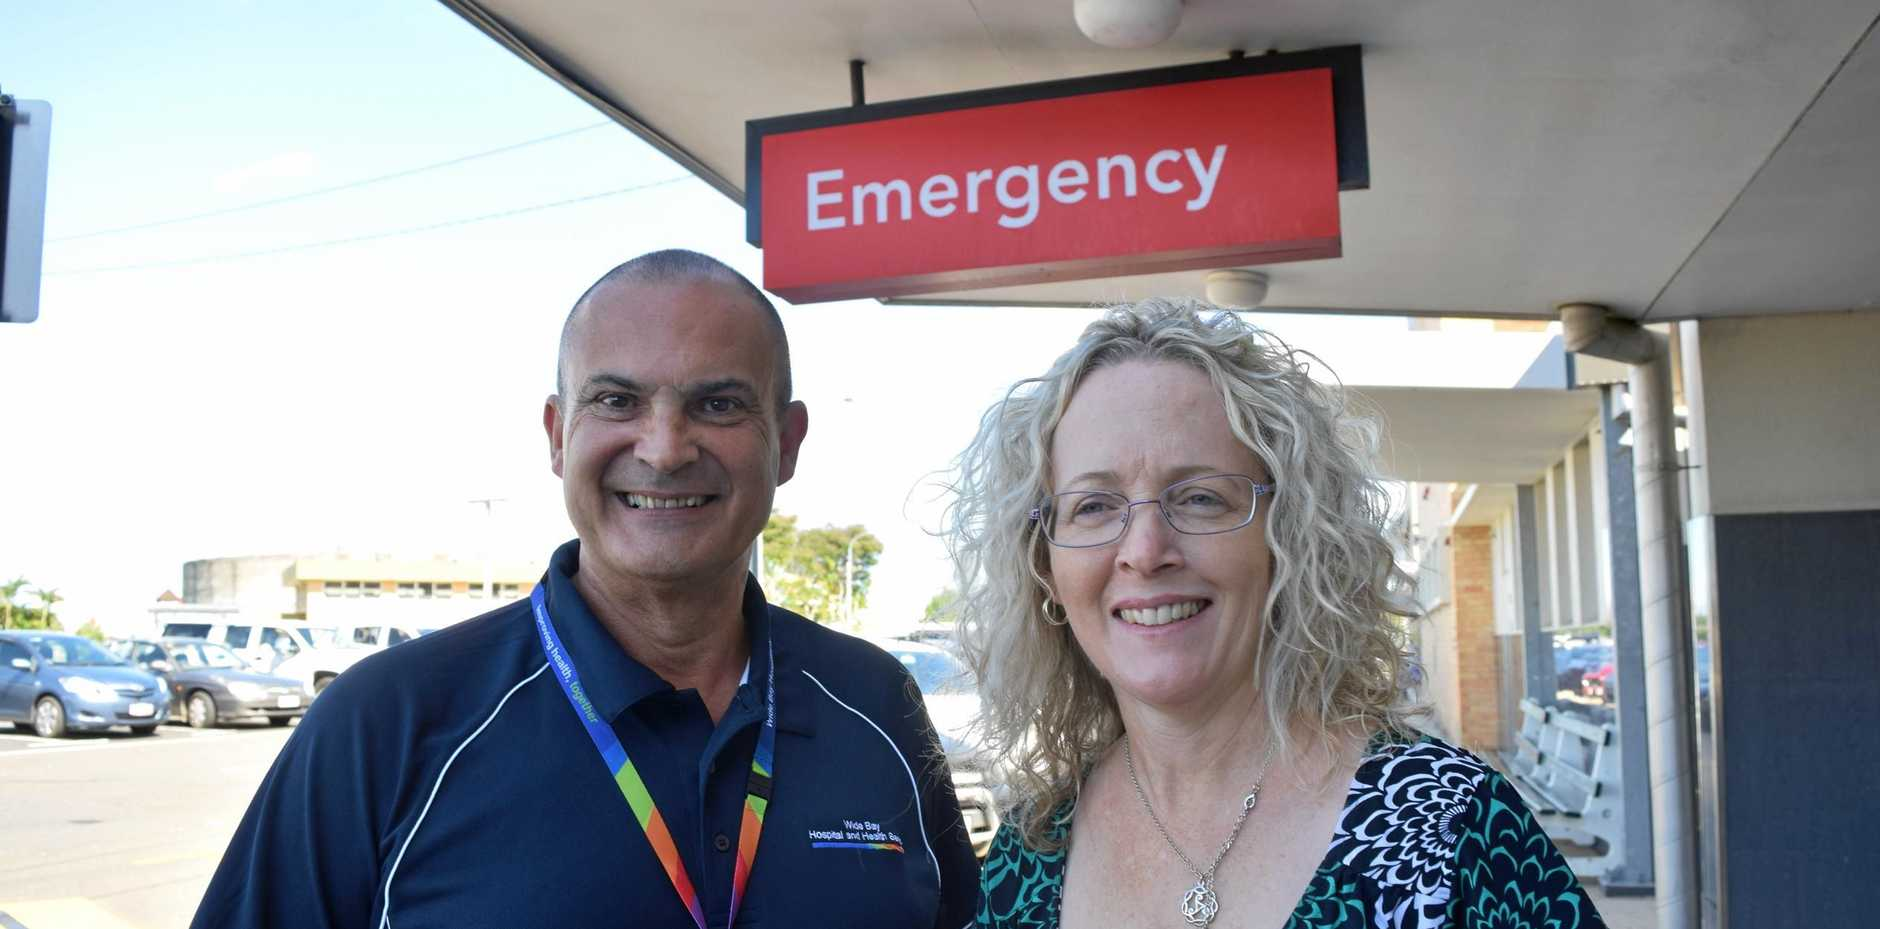 TOP CARE: Wide Bay Hospital and Health Service chief executive Adrian Pennington and board chair Peta Jamieson have good news for the community.